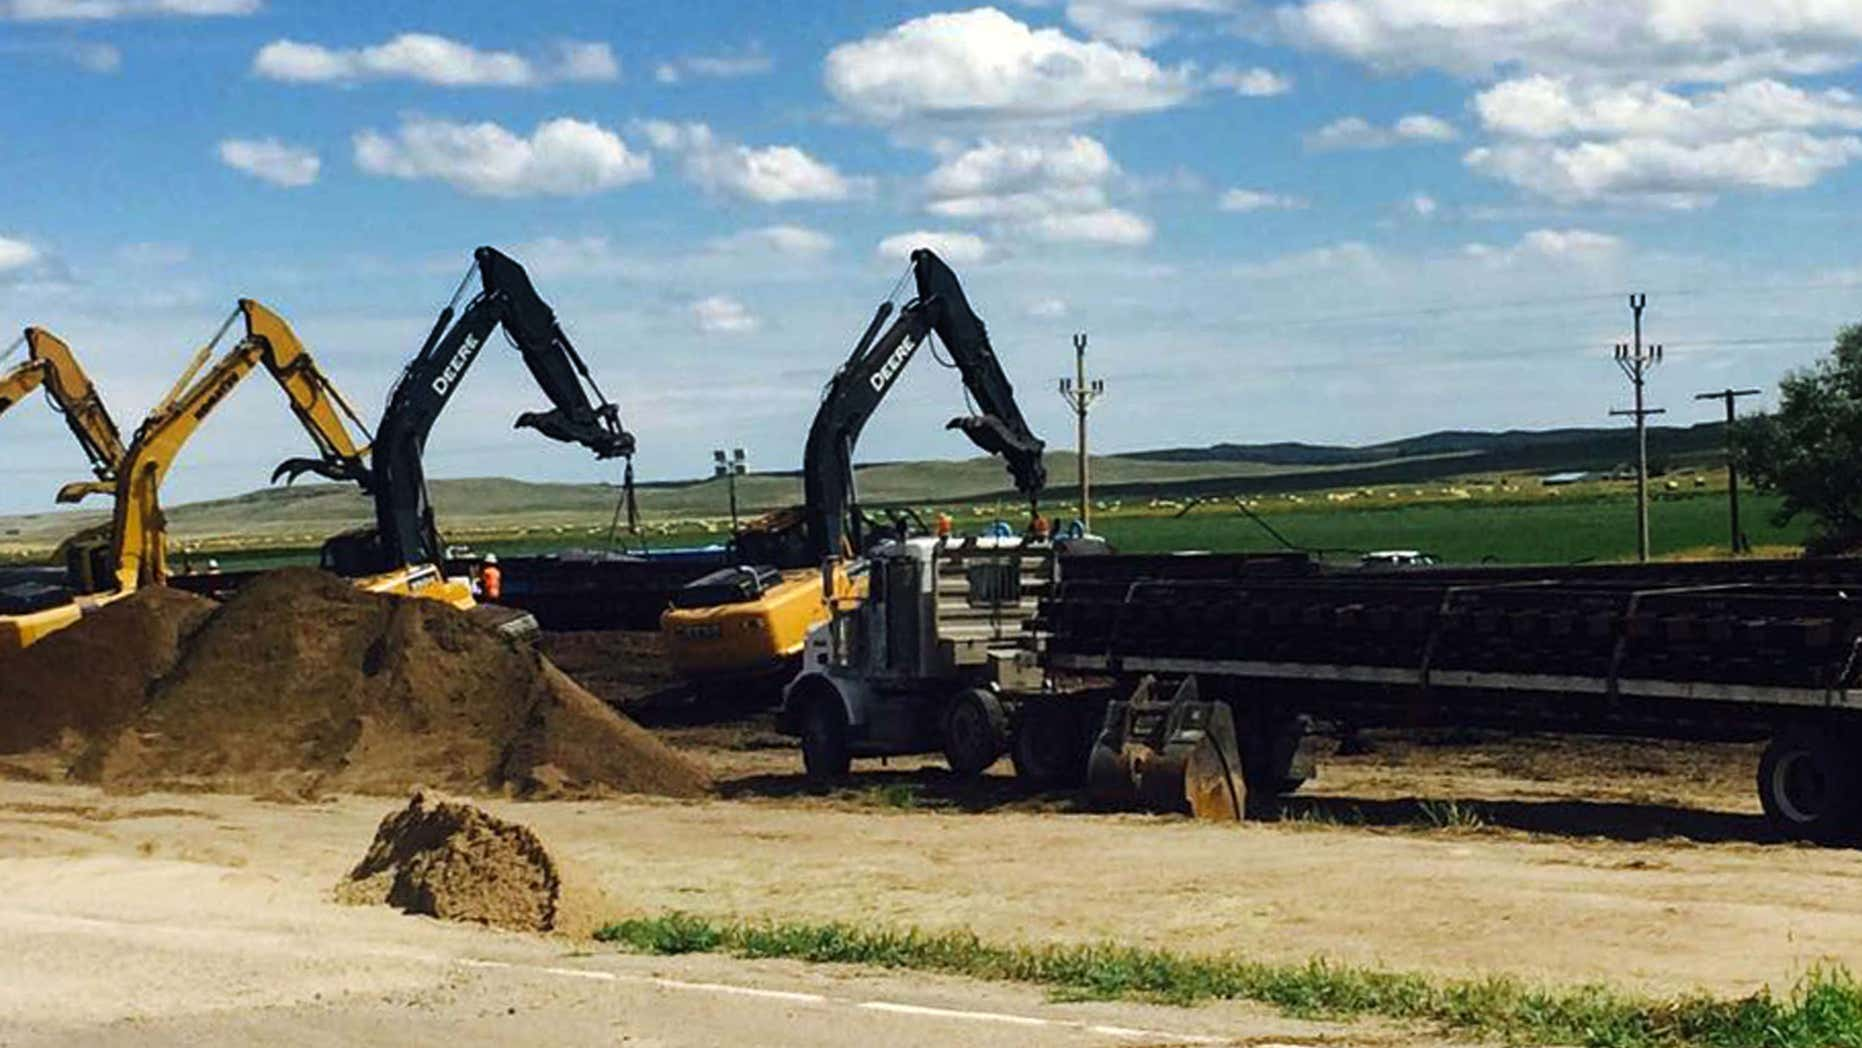 July 17, 2015: Crews with cranes attempt to raise derailed oil tanker cars near Culbertson, Mont.